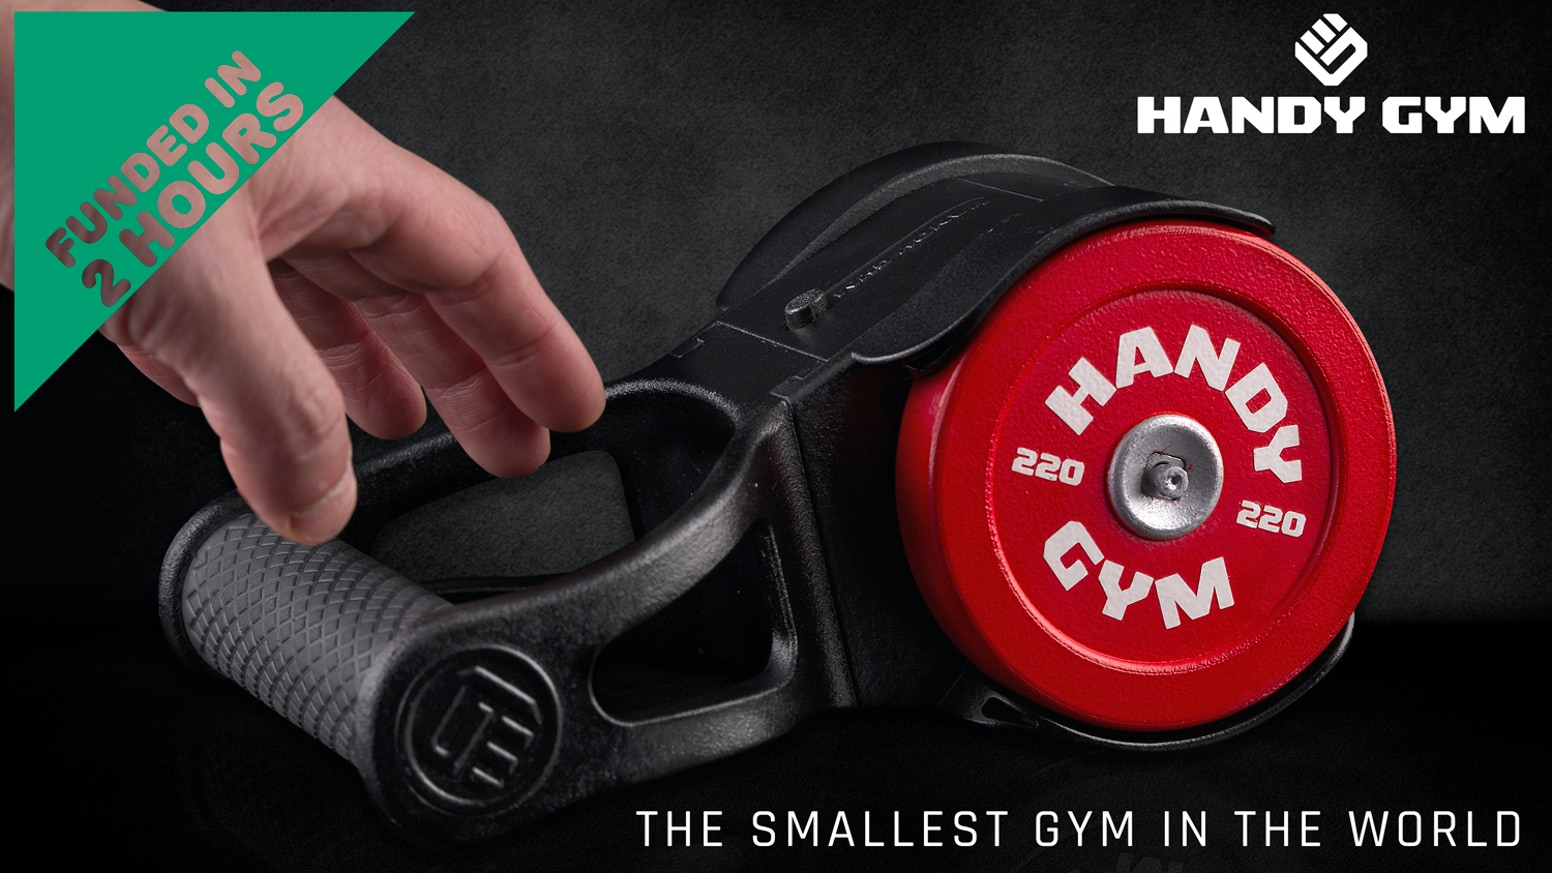 This campaign has been successfully founded. If you wish to purchase Handy Gym, click on the link below.